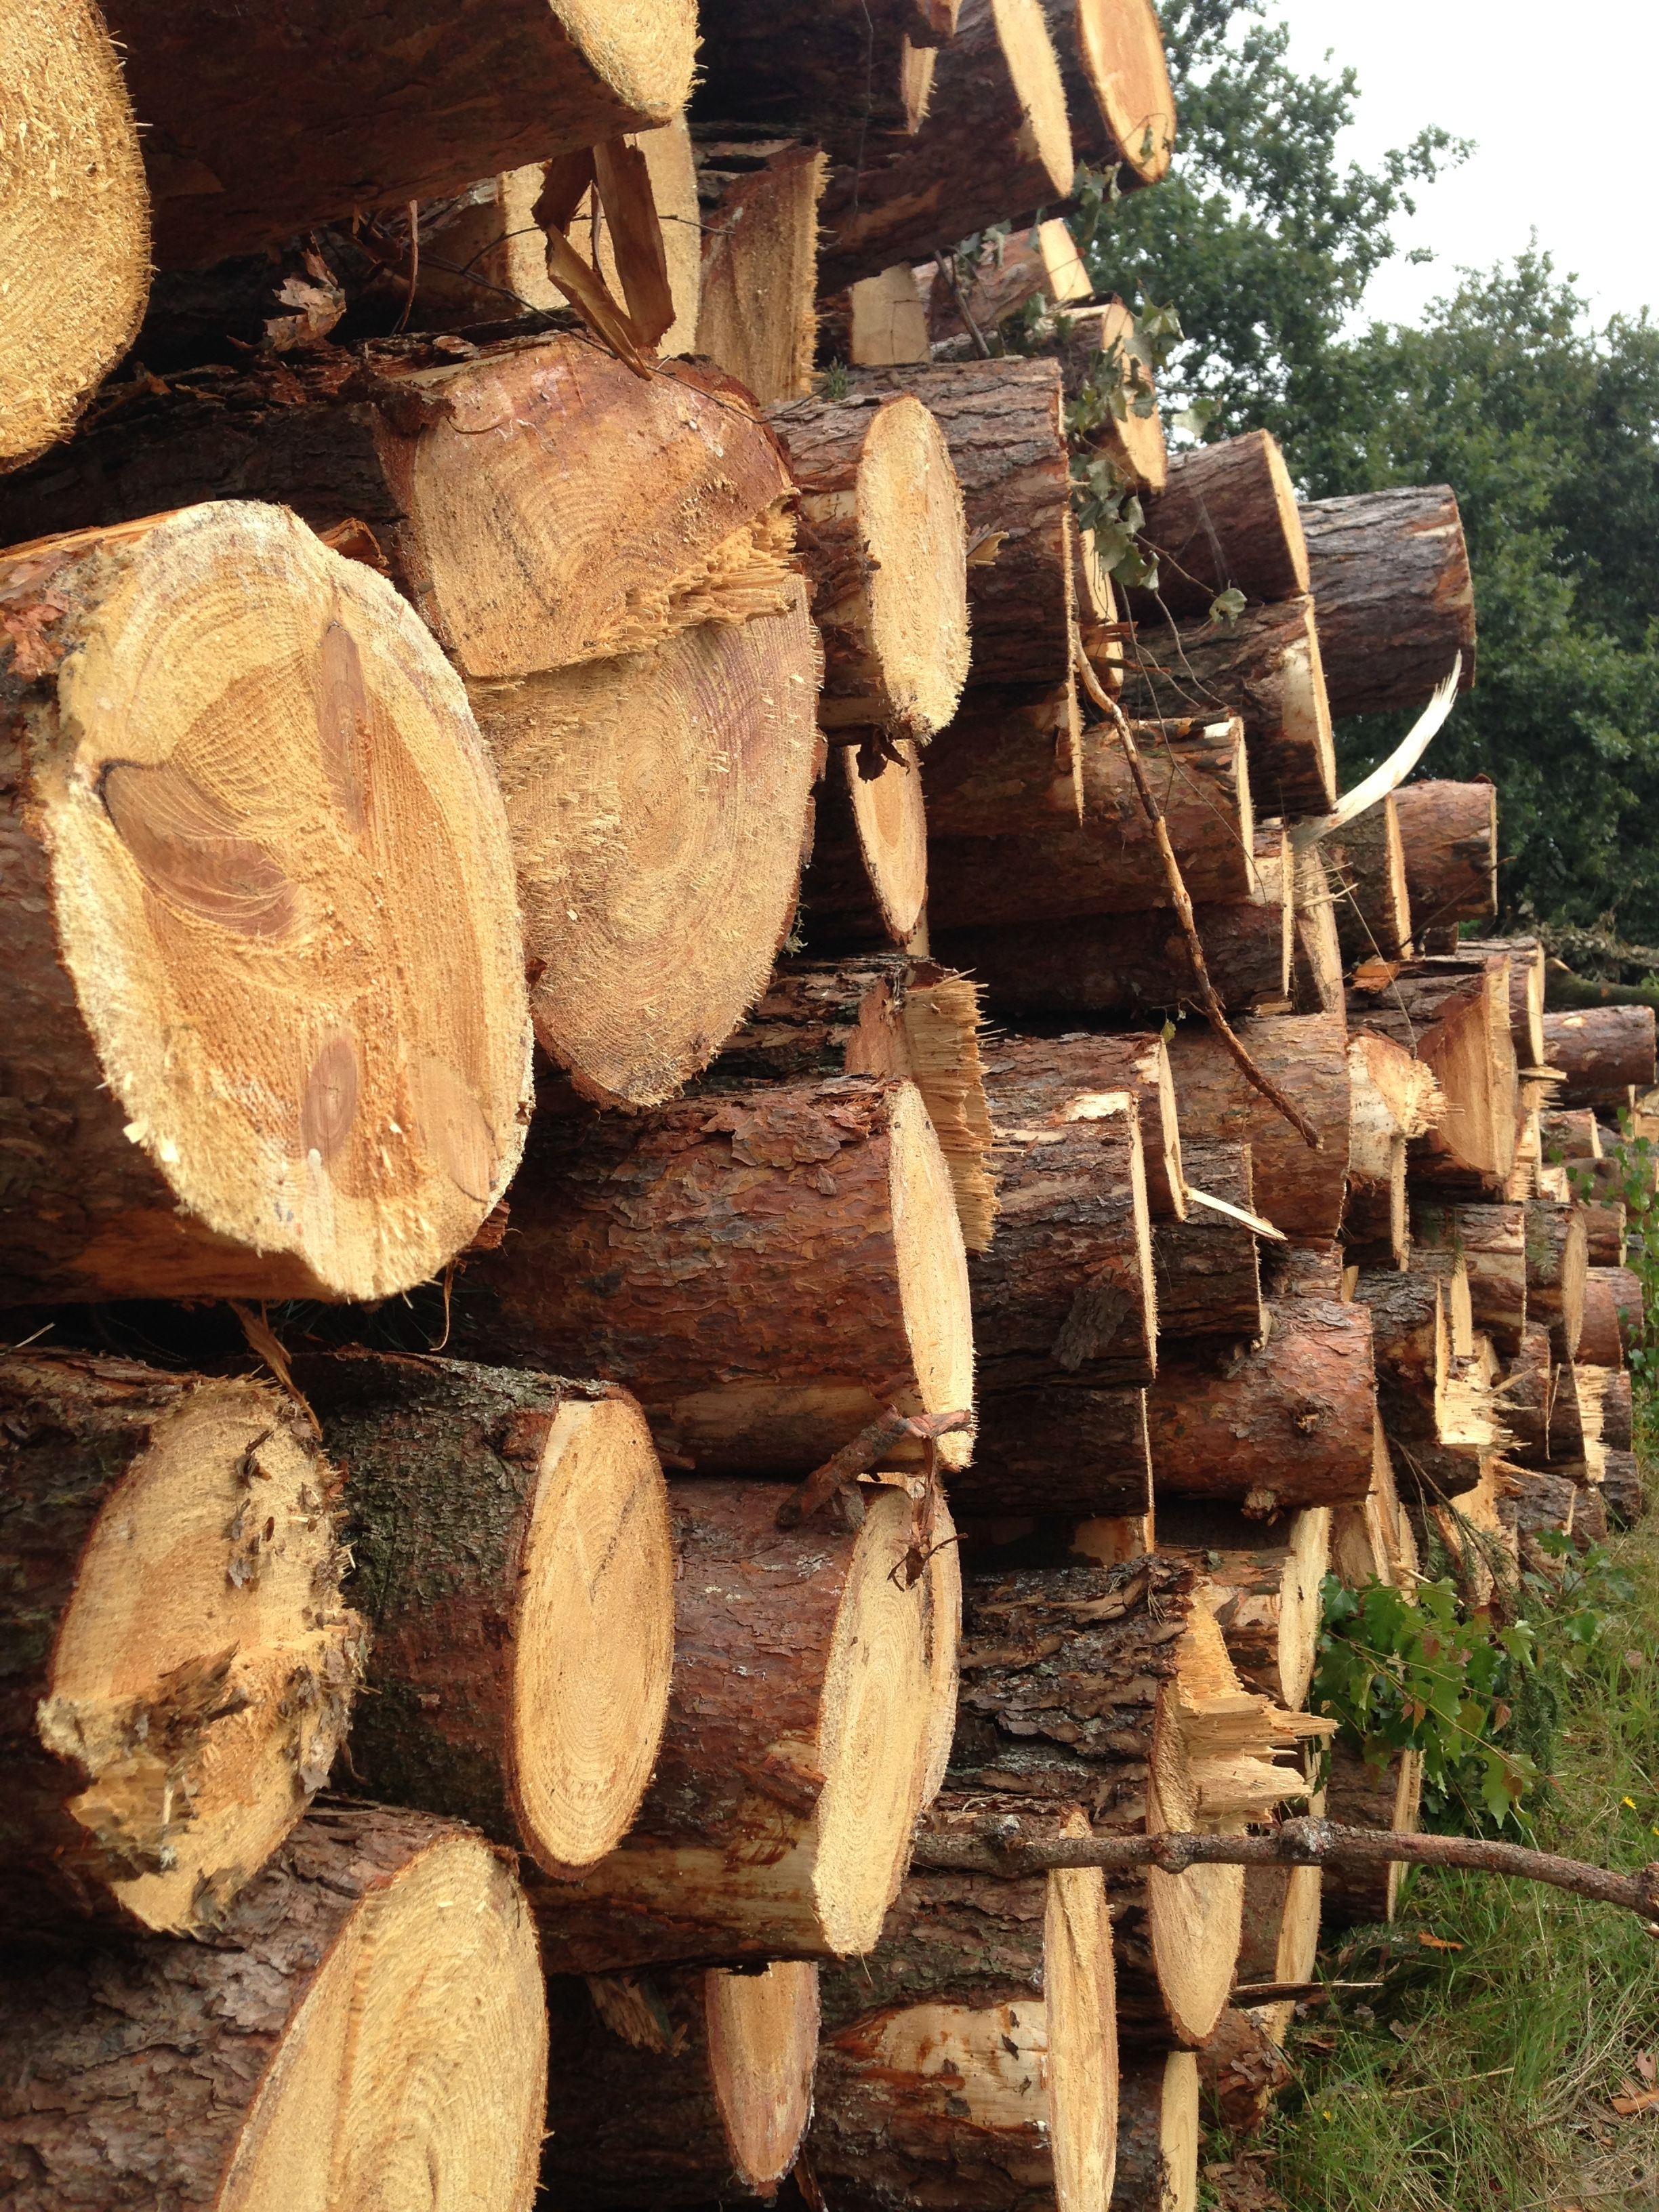 Ecocrops International Images Of Logs Wood Woodworking Logging